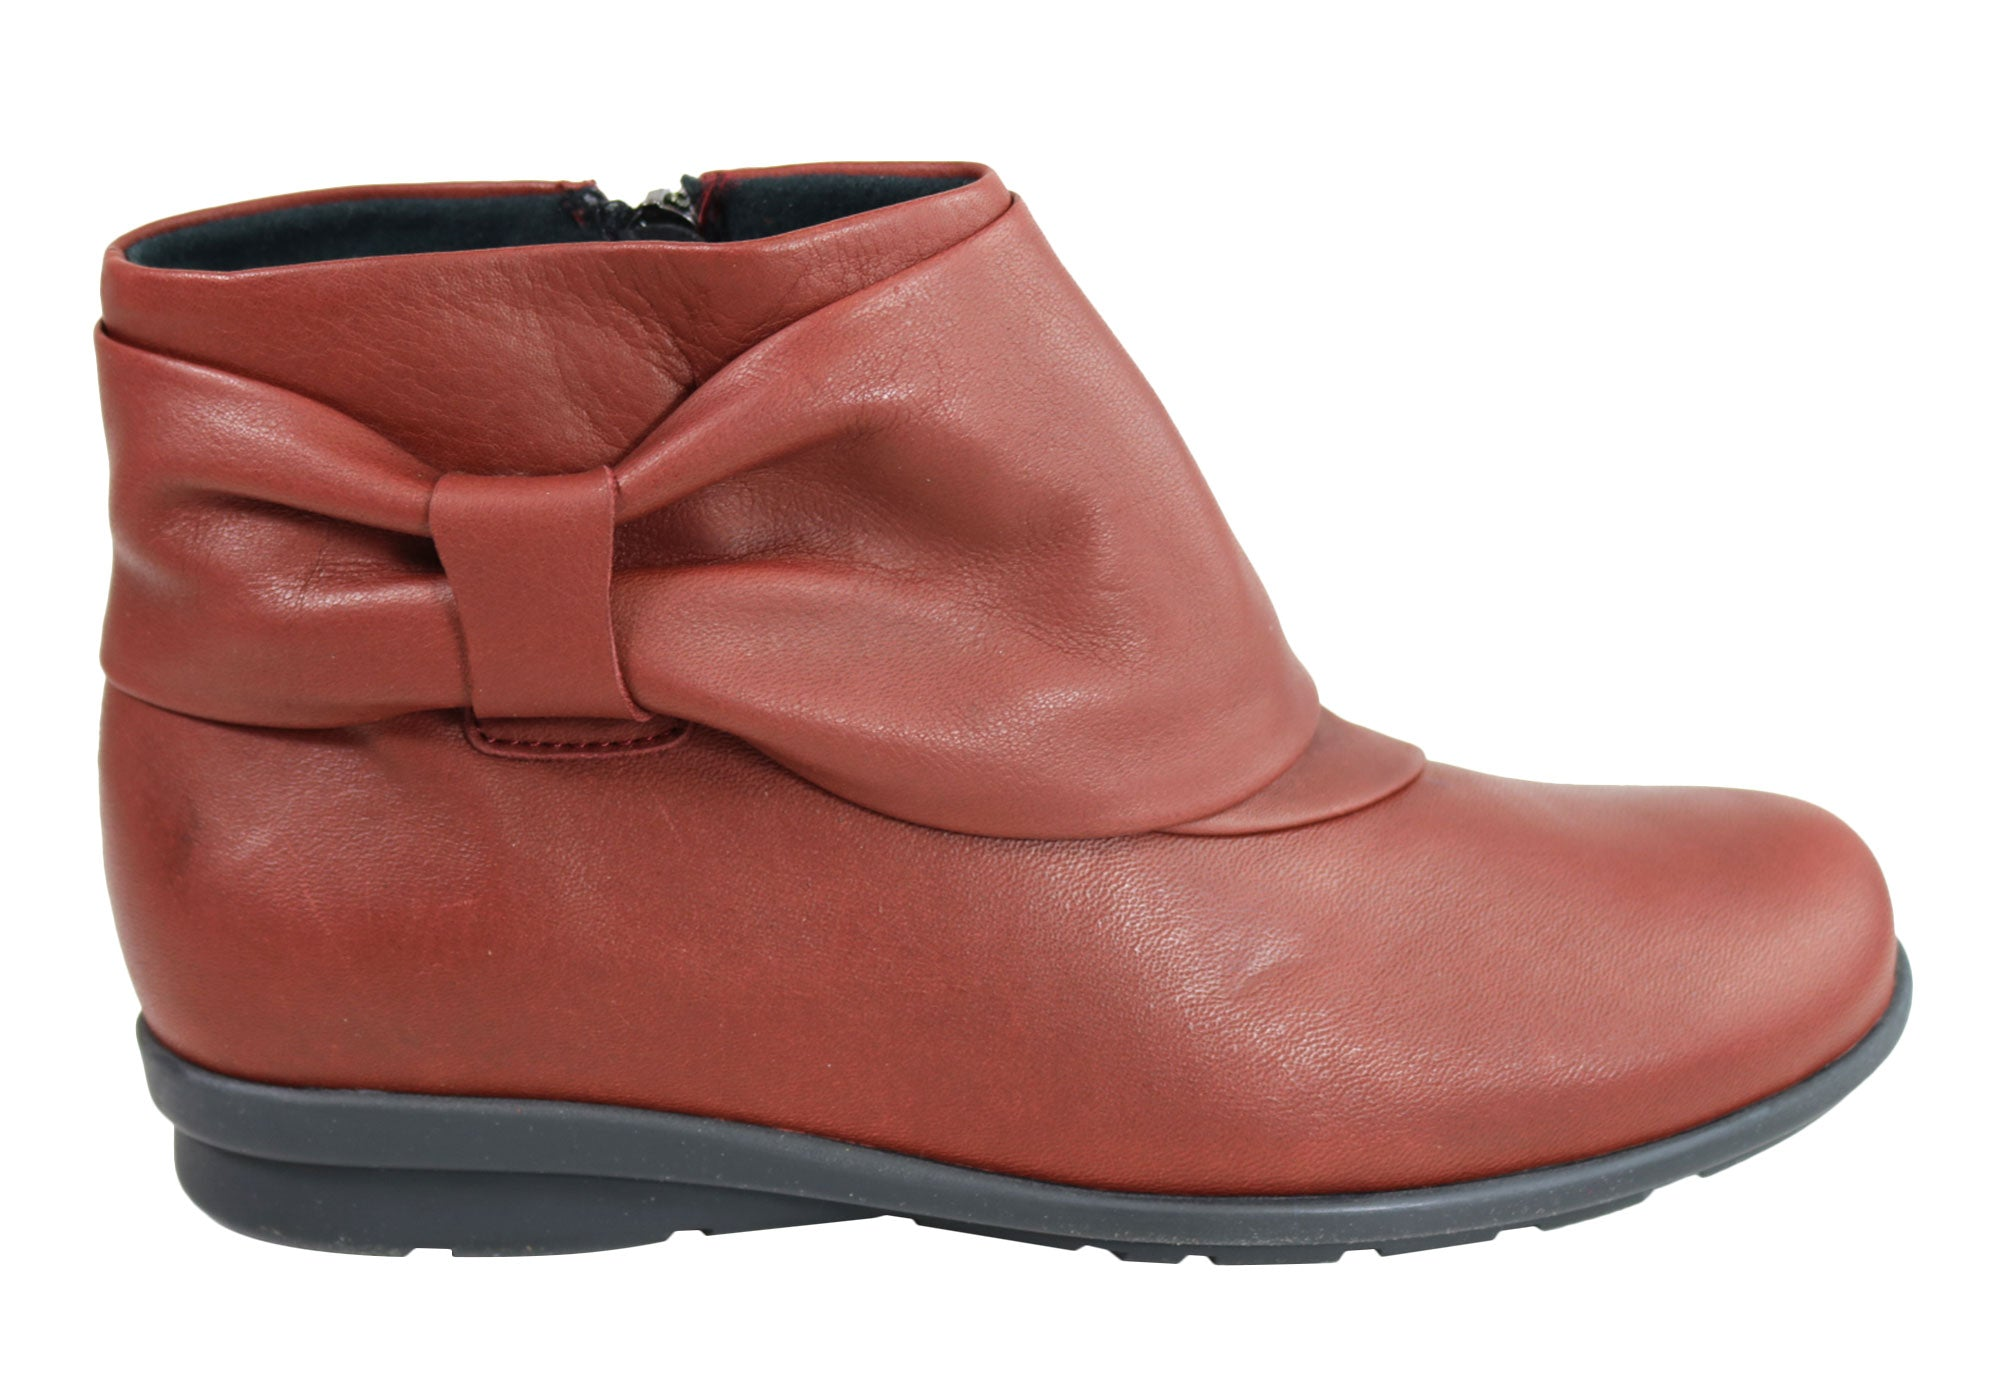 NEW-FLEX-amp-GO-WOMENS-COMFORTABLE-LEATHER-ANKLE-BOOTS-MADE-IN-PORTUGAL